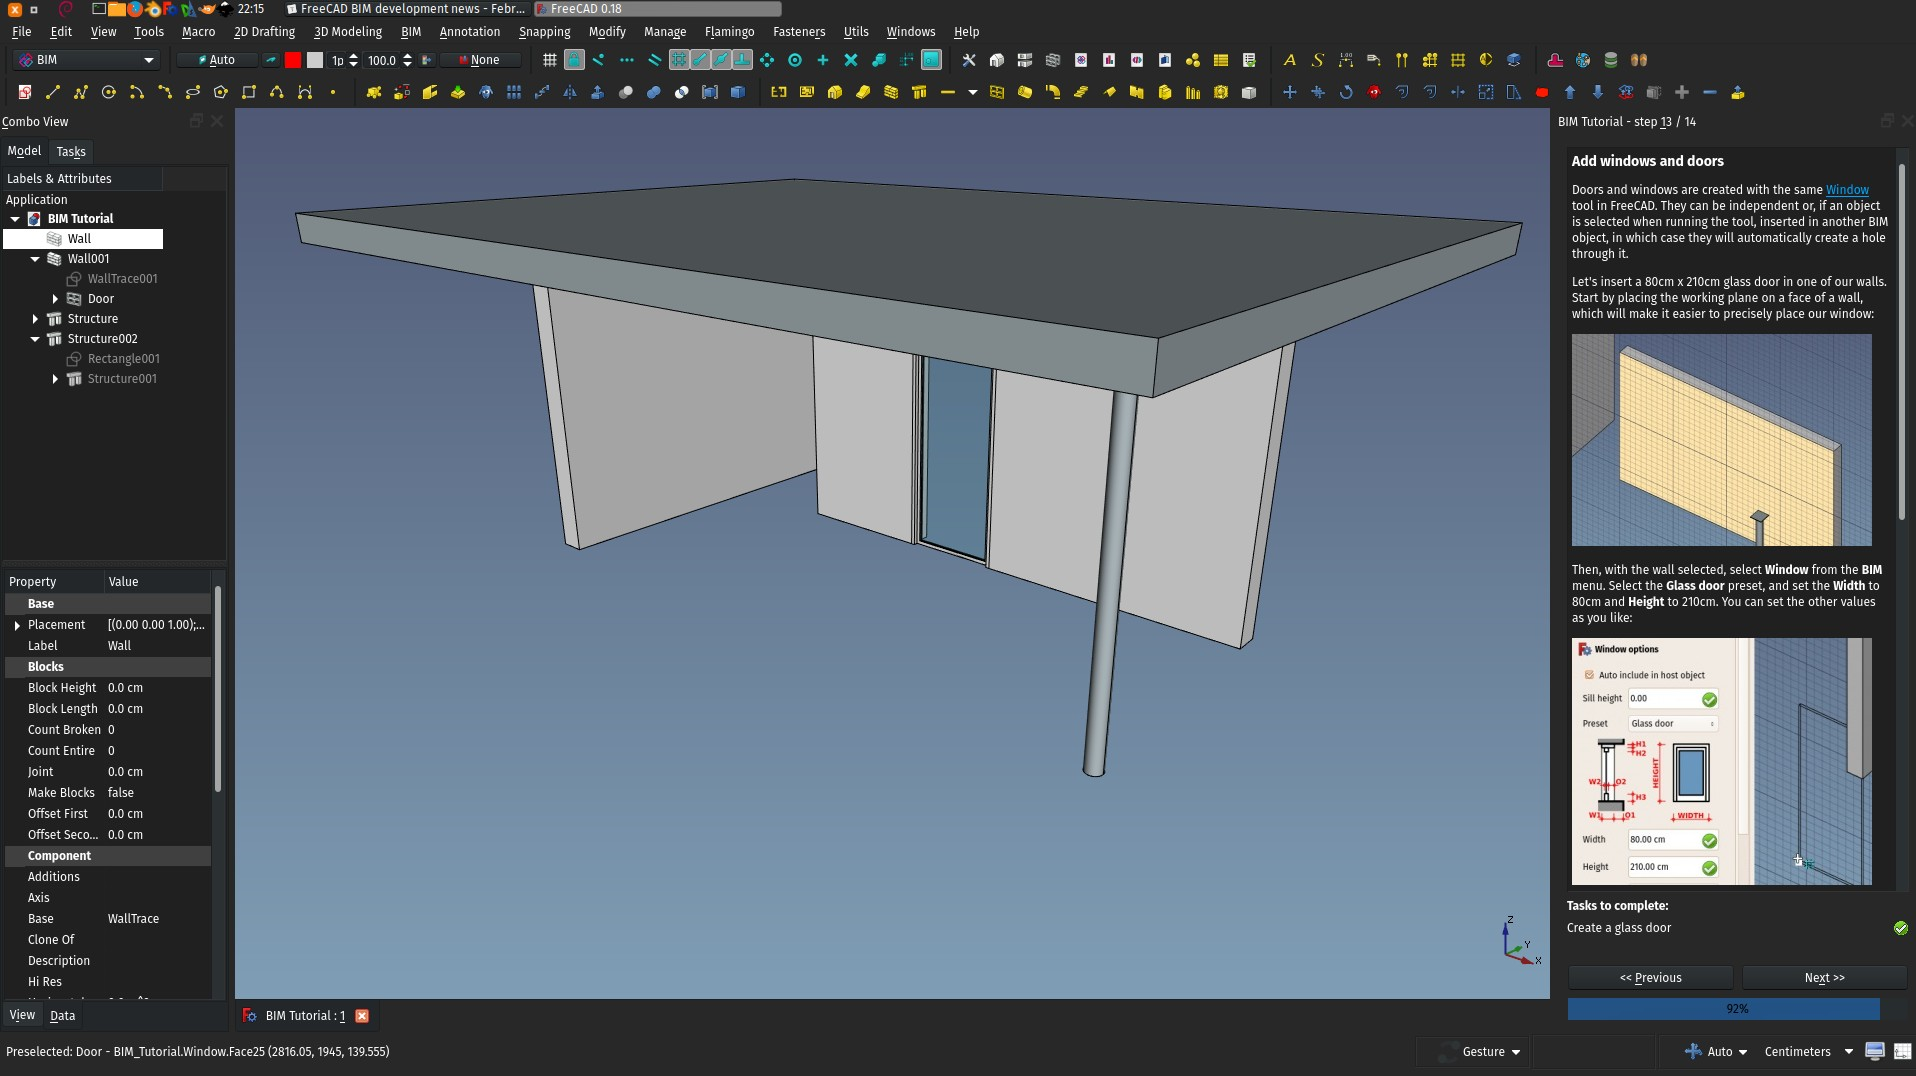 The almost finished BIM tutorial